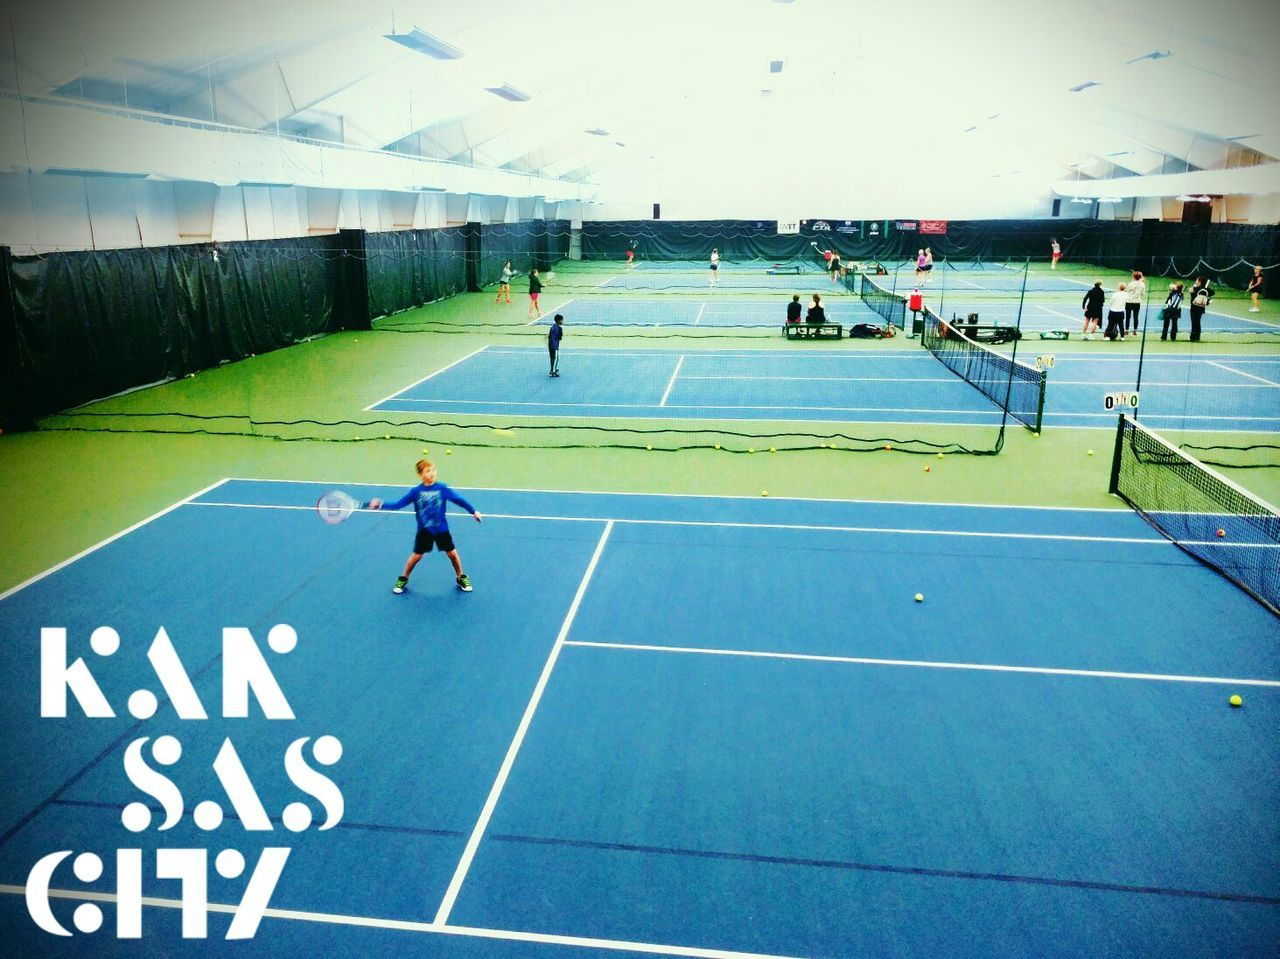 Sport Competitive Sport Sports Training Professional Sport Athlete Competition Sportsman People Real People Kids Tennis Tennis Court Tennis Under 10 Swing Kansas City Hilltop Individual Sport